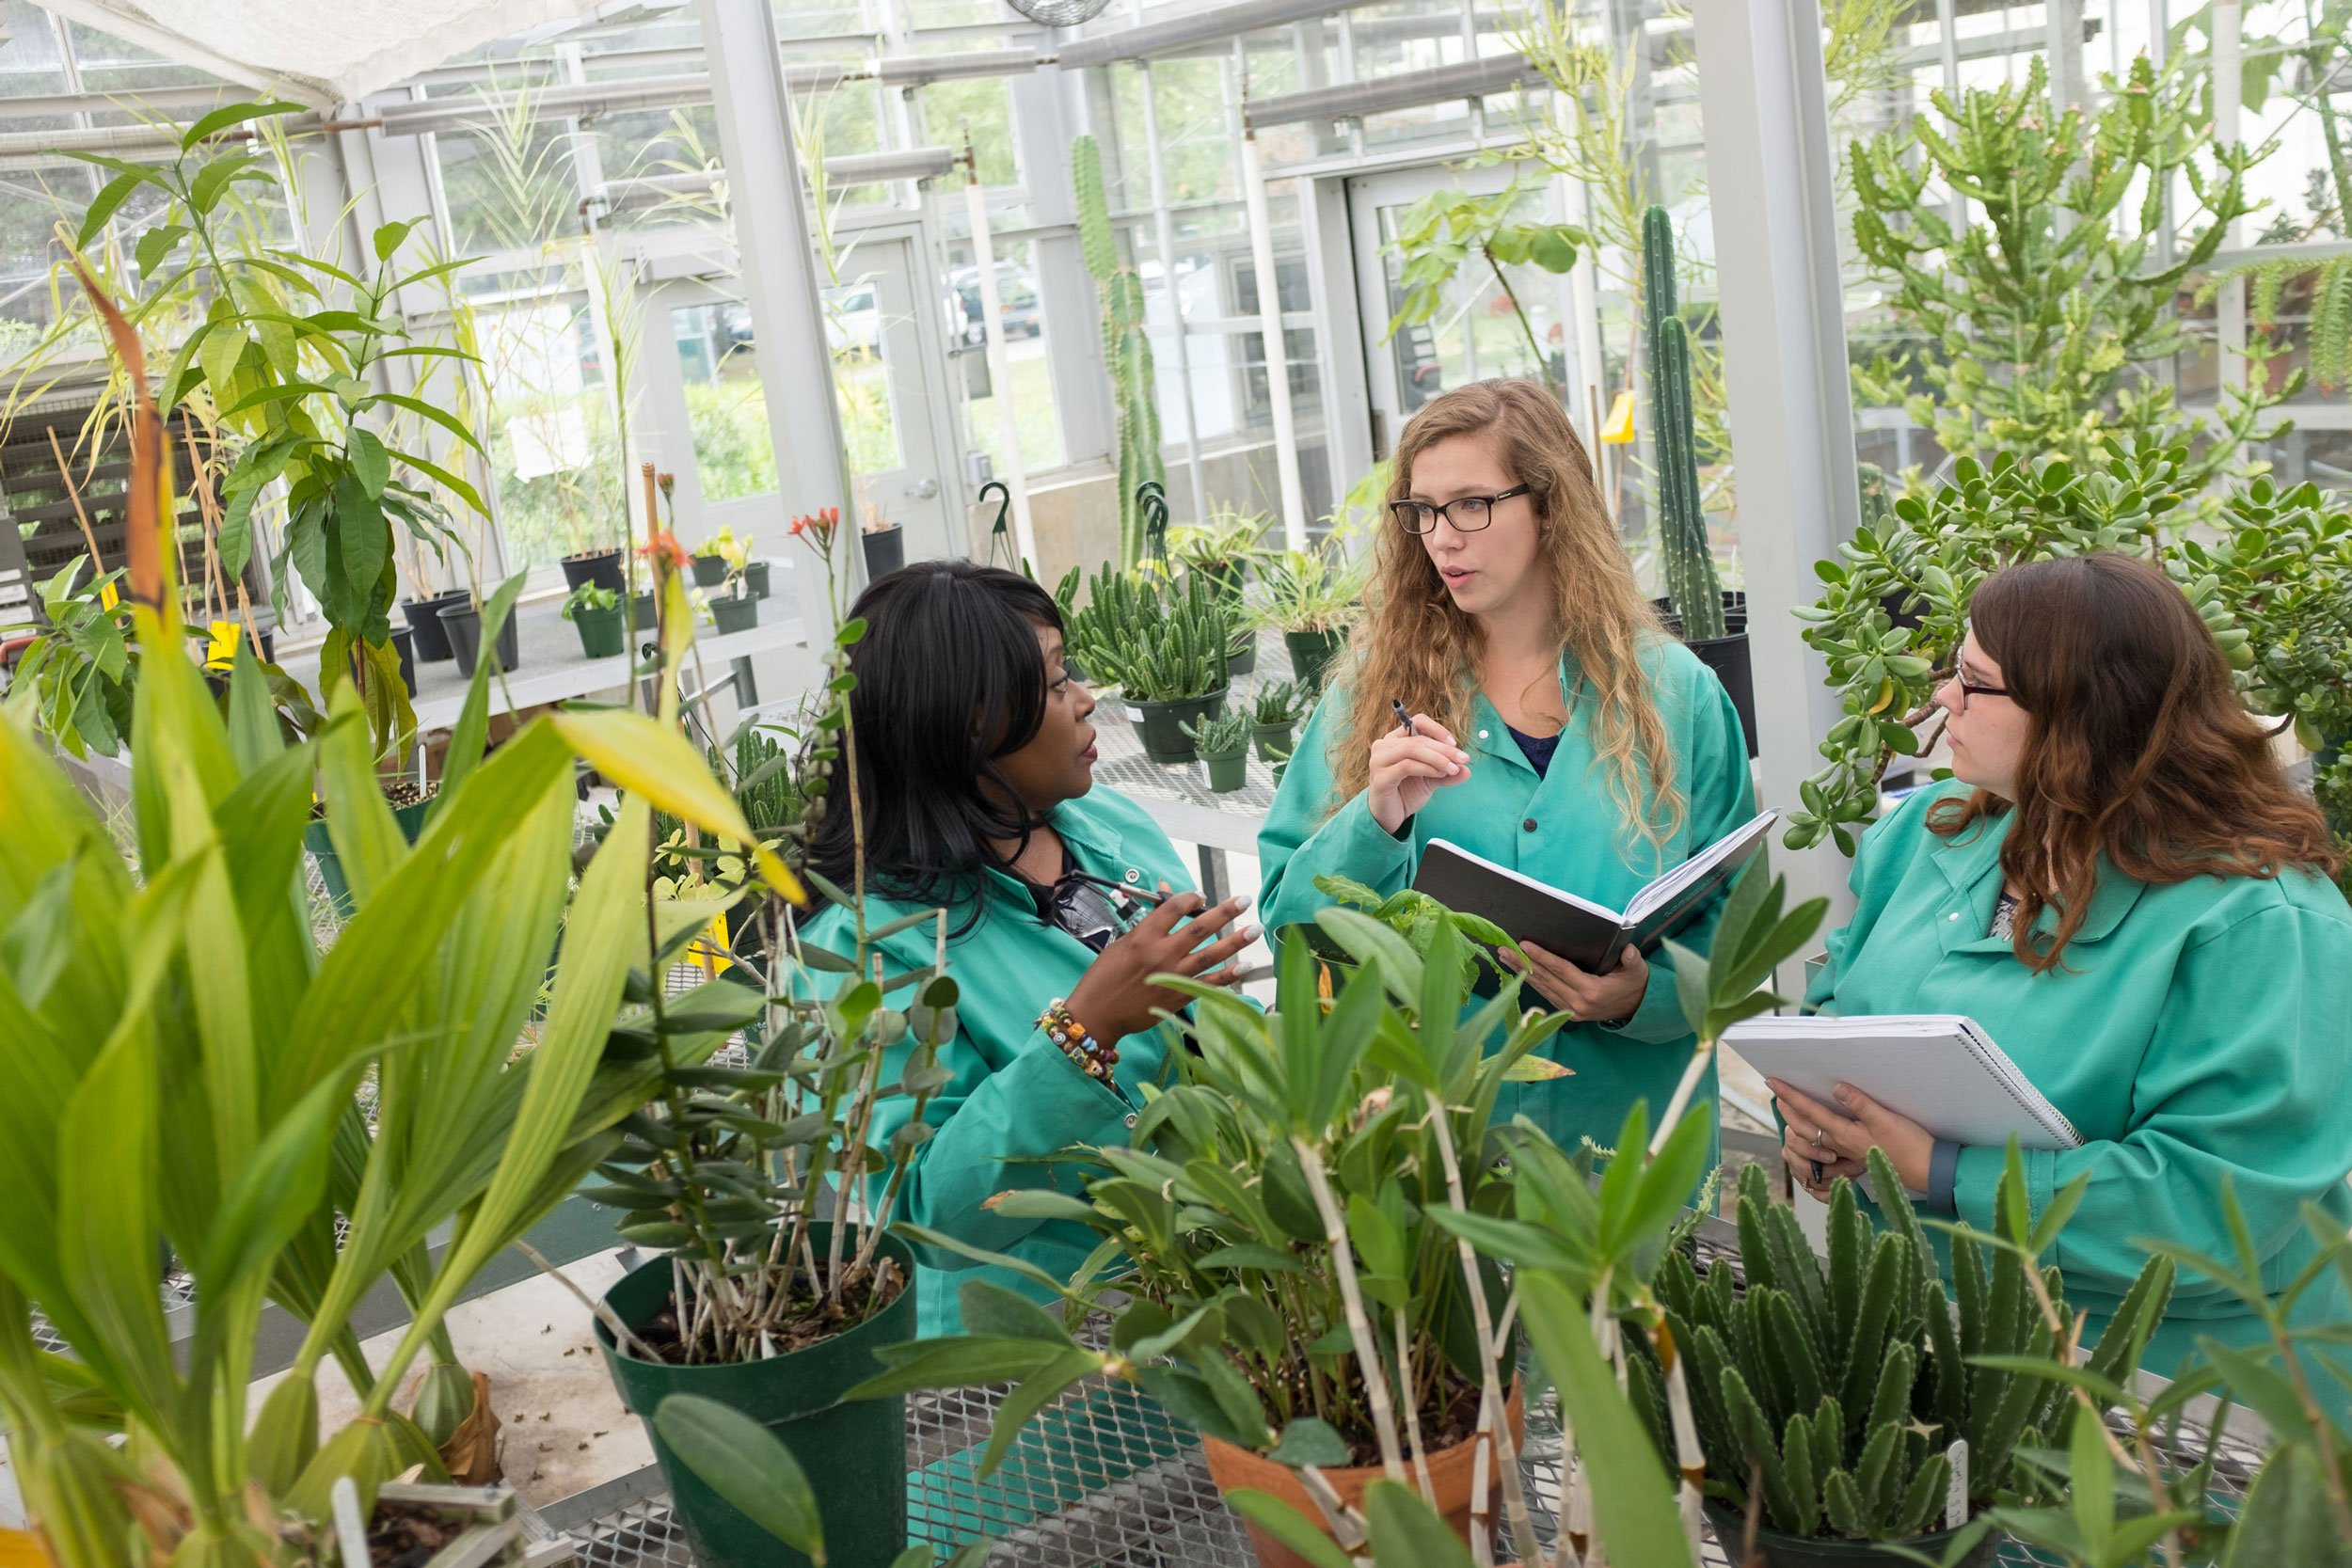 Chemistry Professor Dr. Rabi Musah works with her graduate students inside a greenhouse.